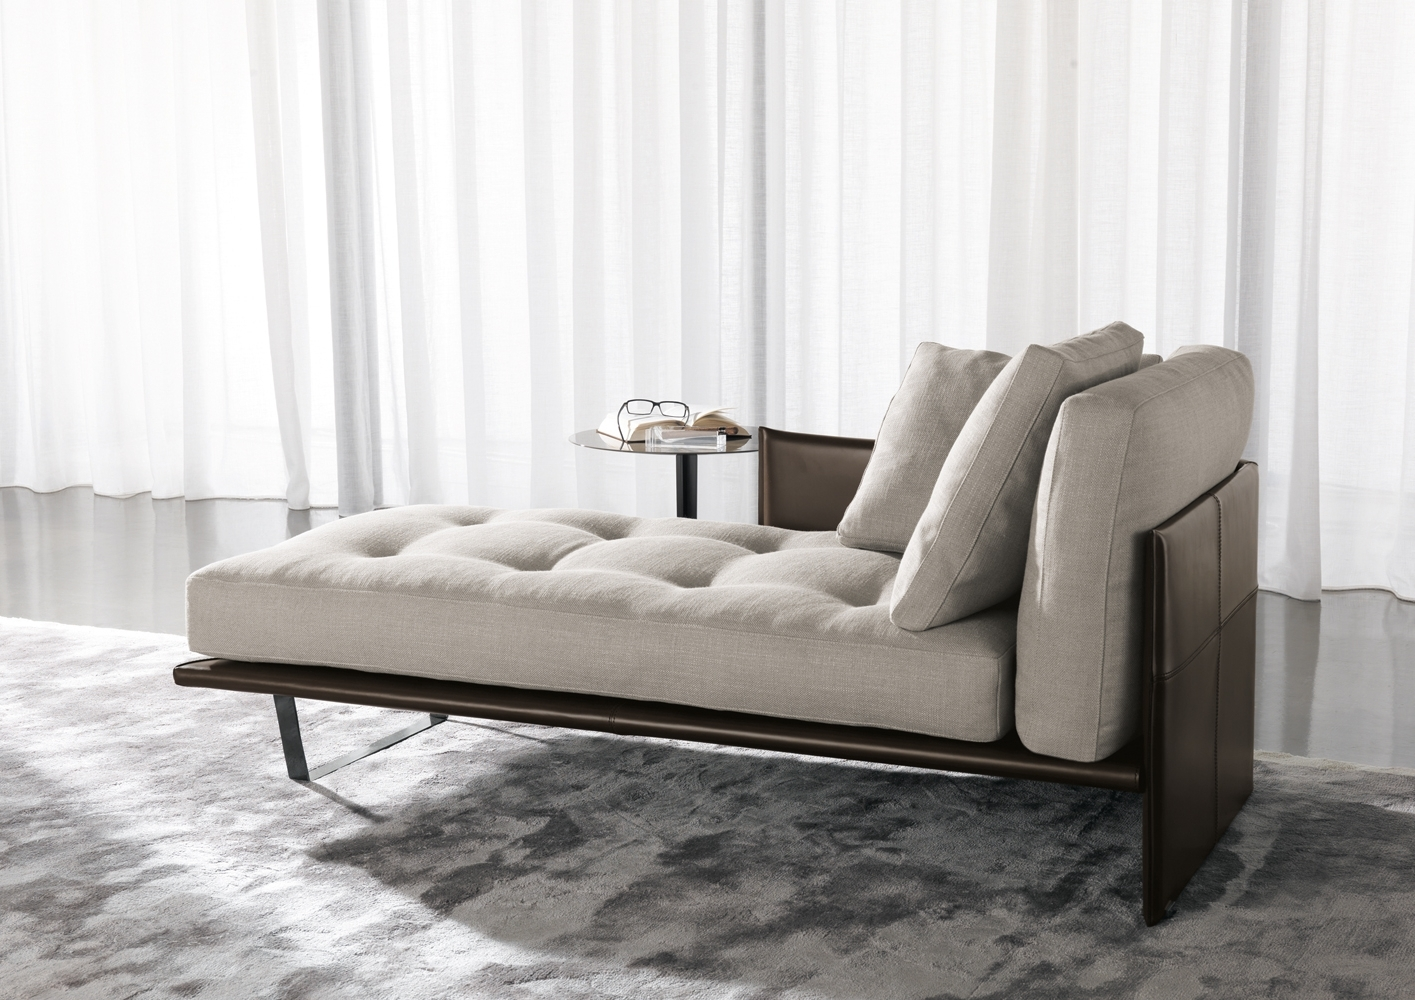 Switch Modern With Chaise Lounge Daybeds (View 14 of 15)